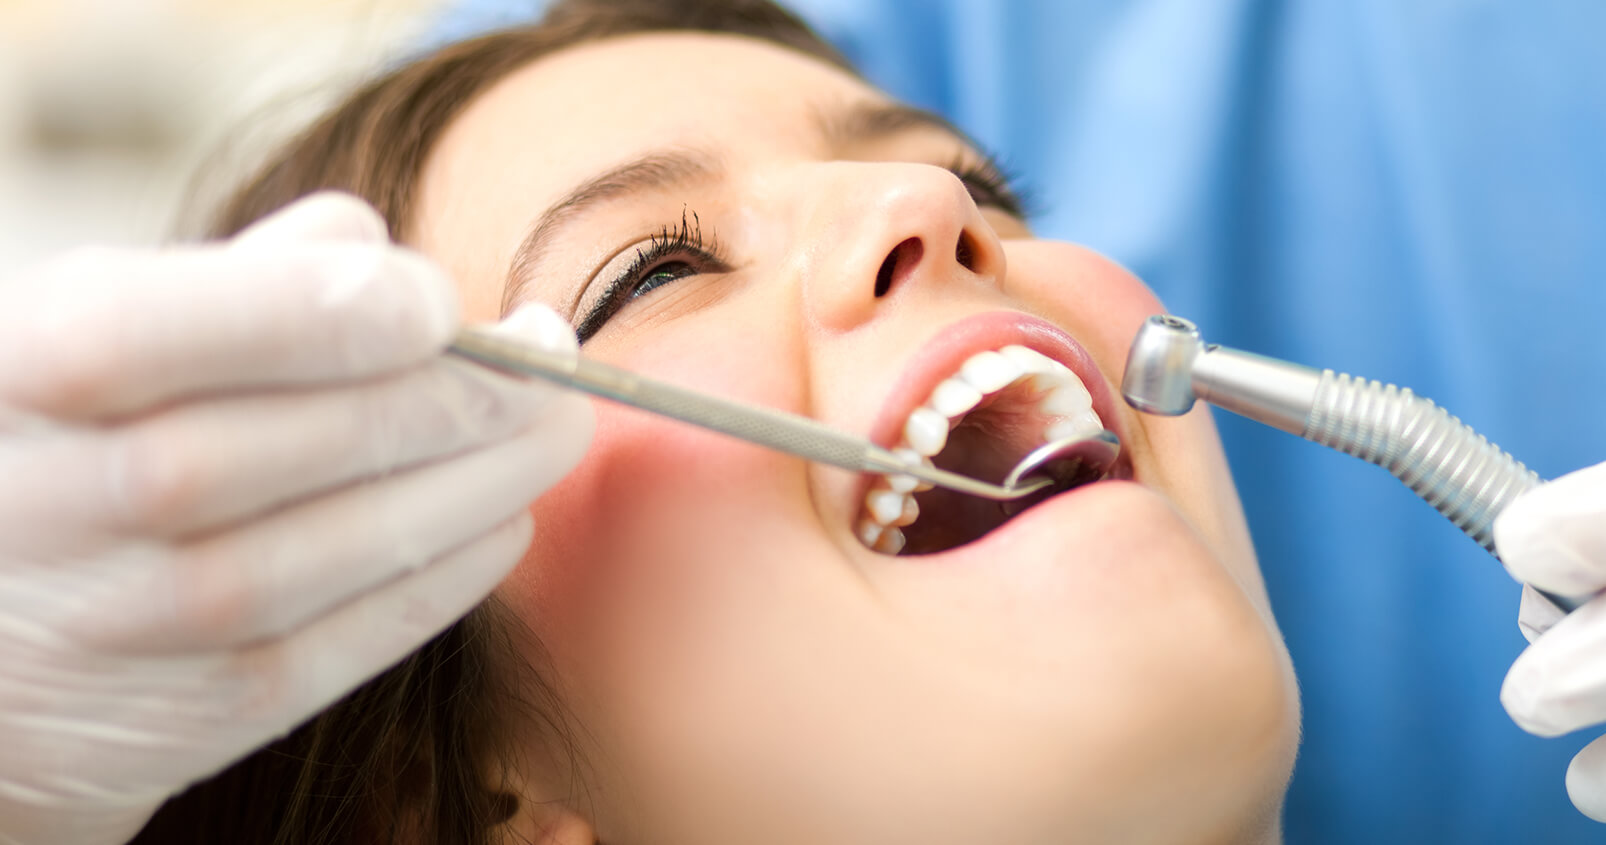 Mercury Safe Dental Services at Gentle Care Dentistry in Azusa CA Area